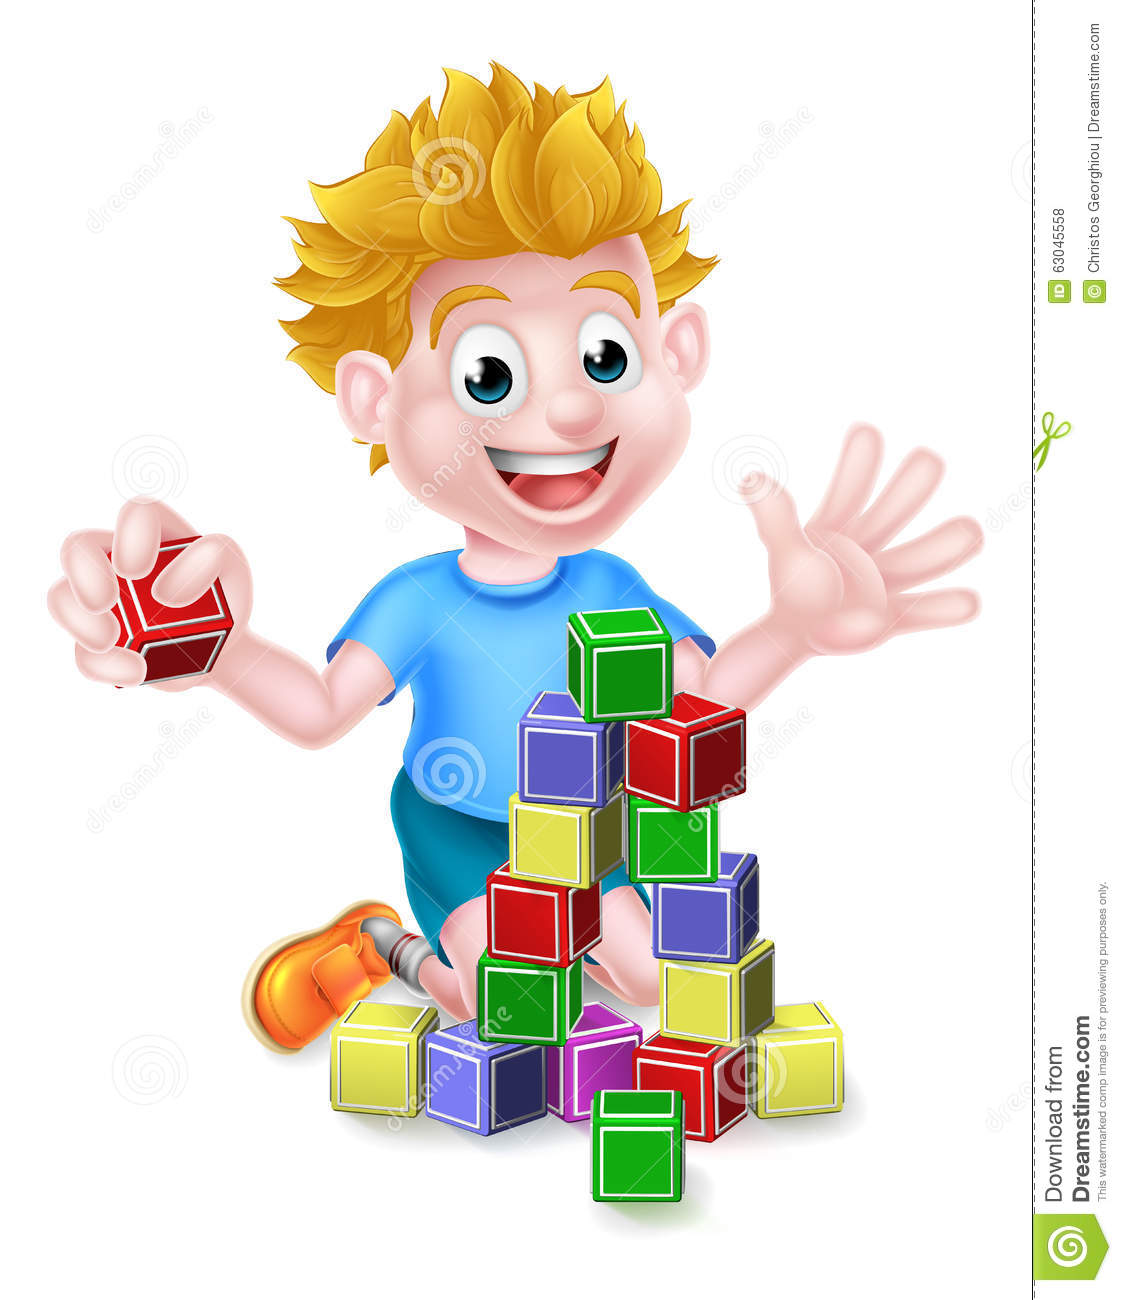 child building with blocks clipart - Clipground